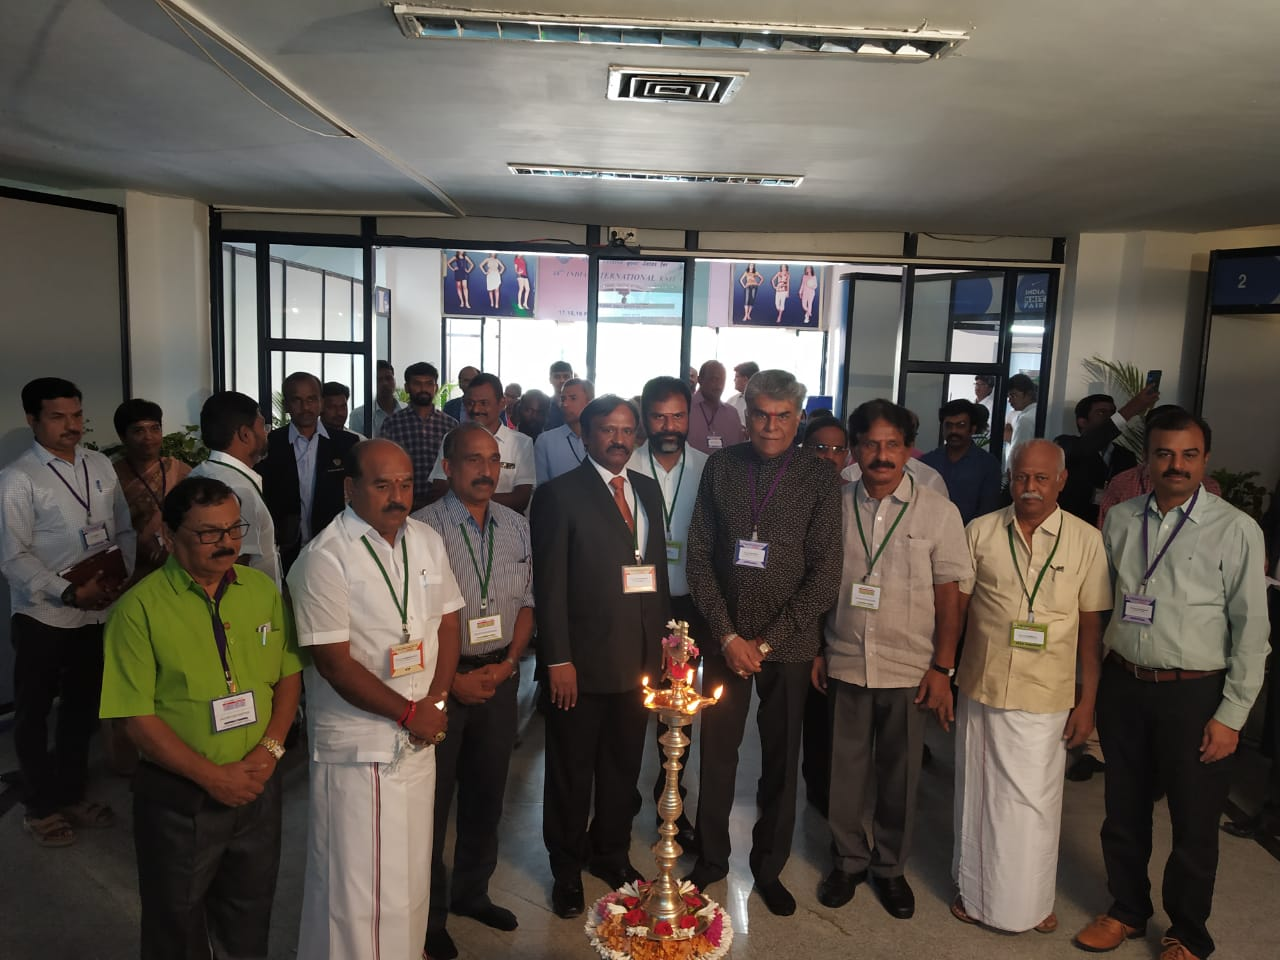 AEPC Organizes International Knit Fair In Tirupur; Aims At Increasing Investments For Textiles In India